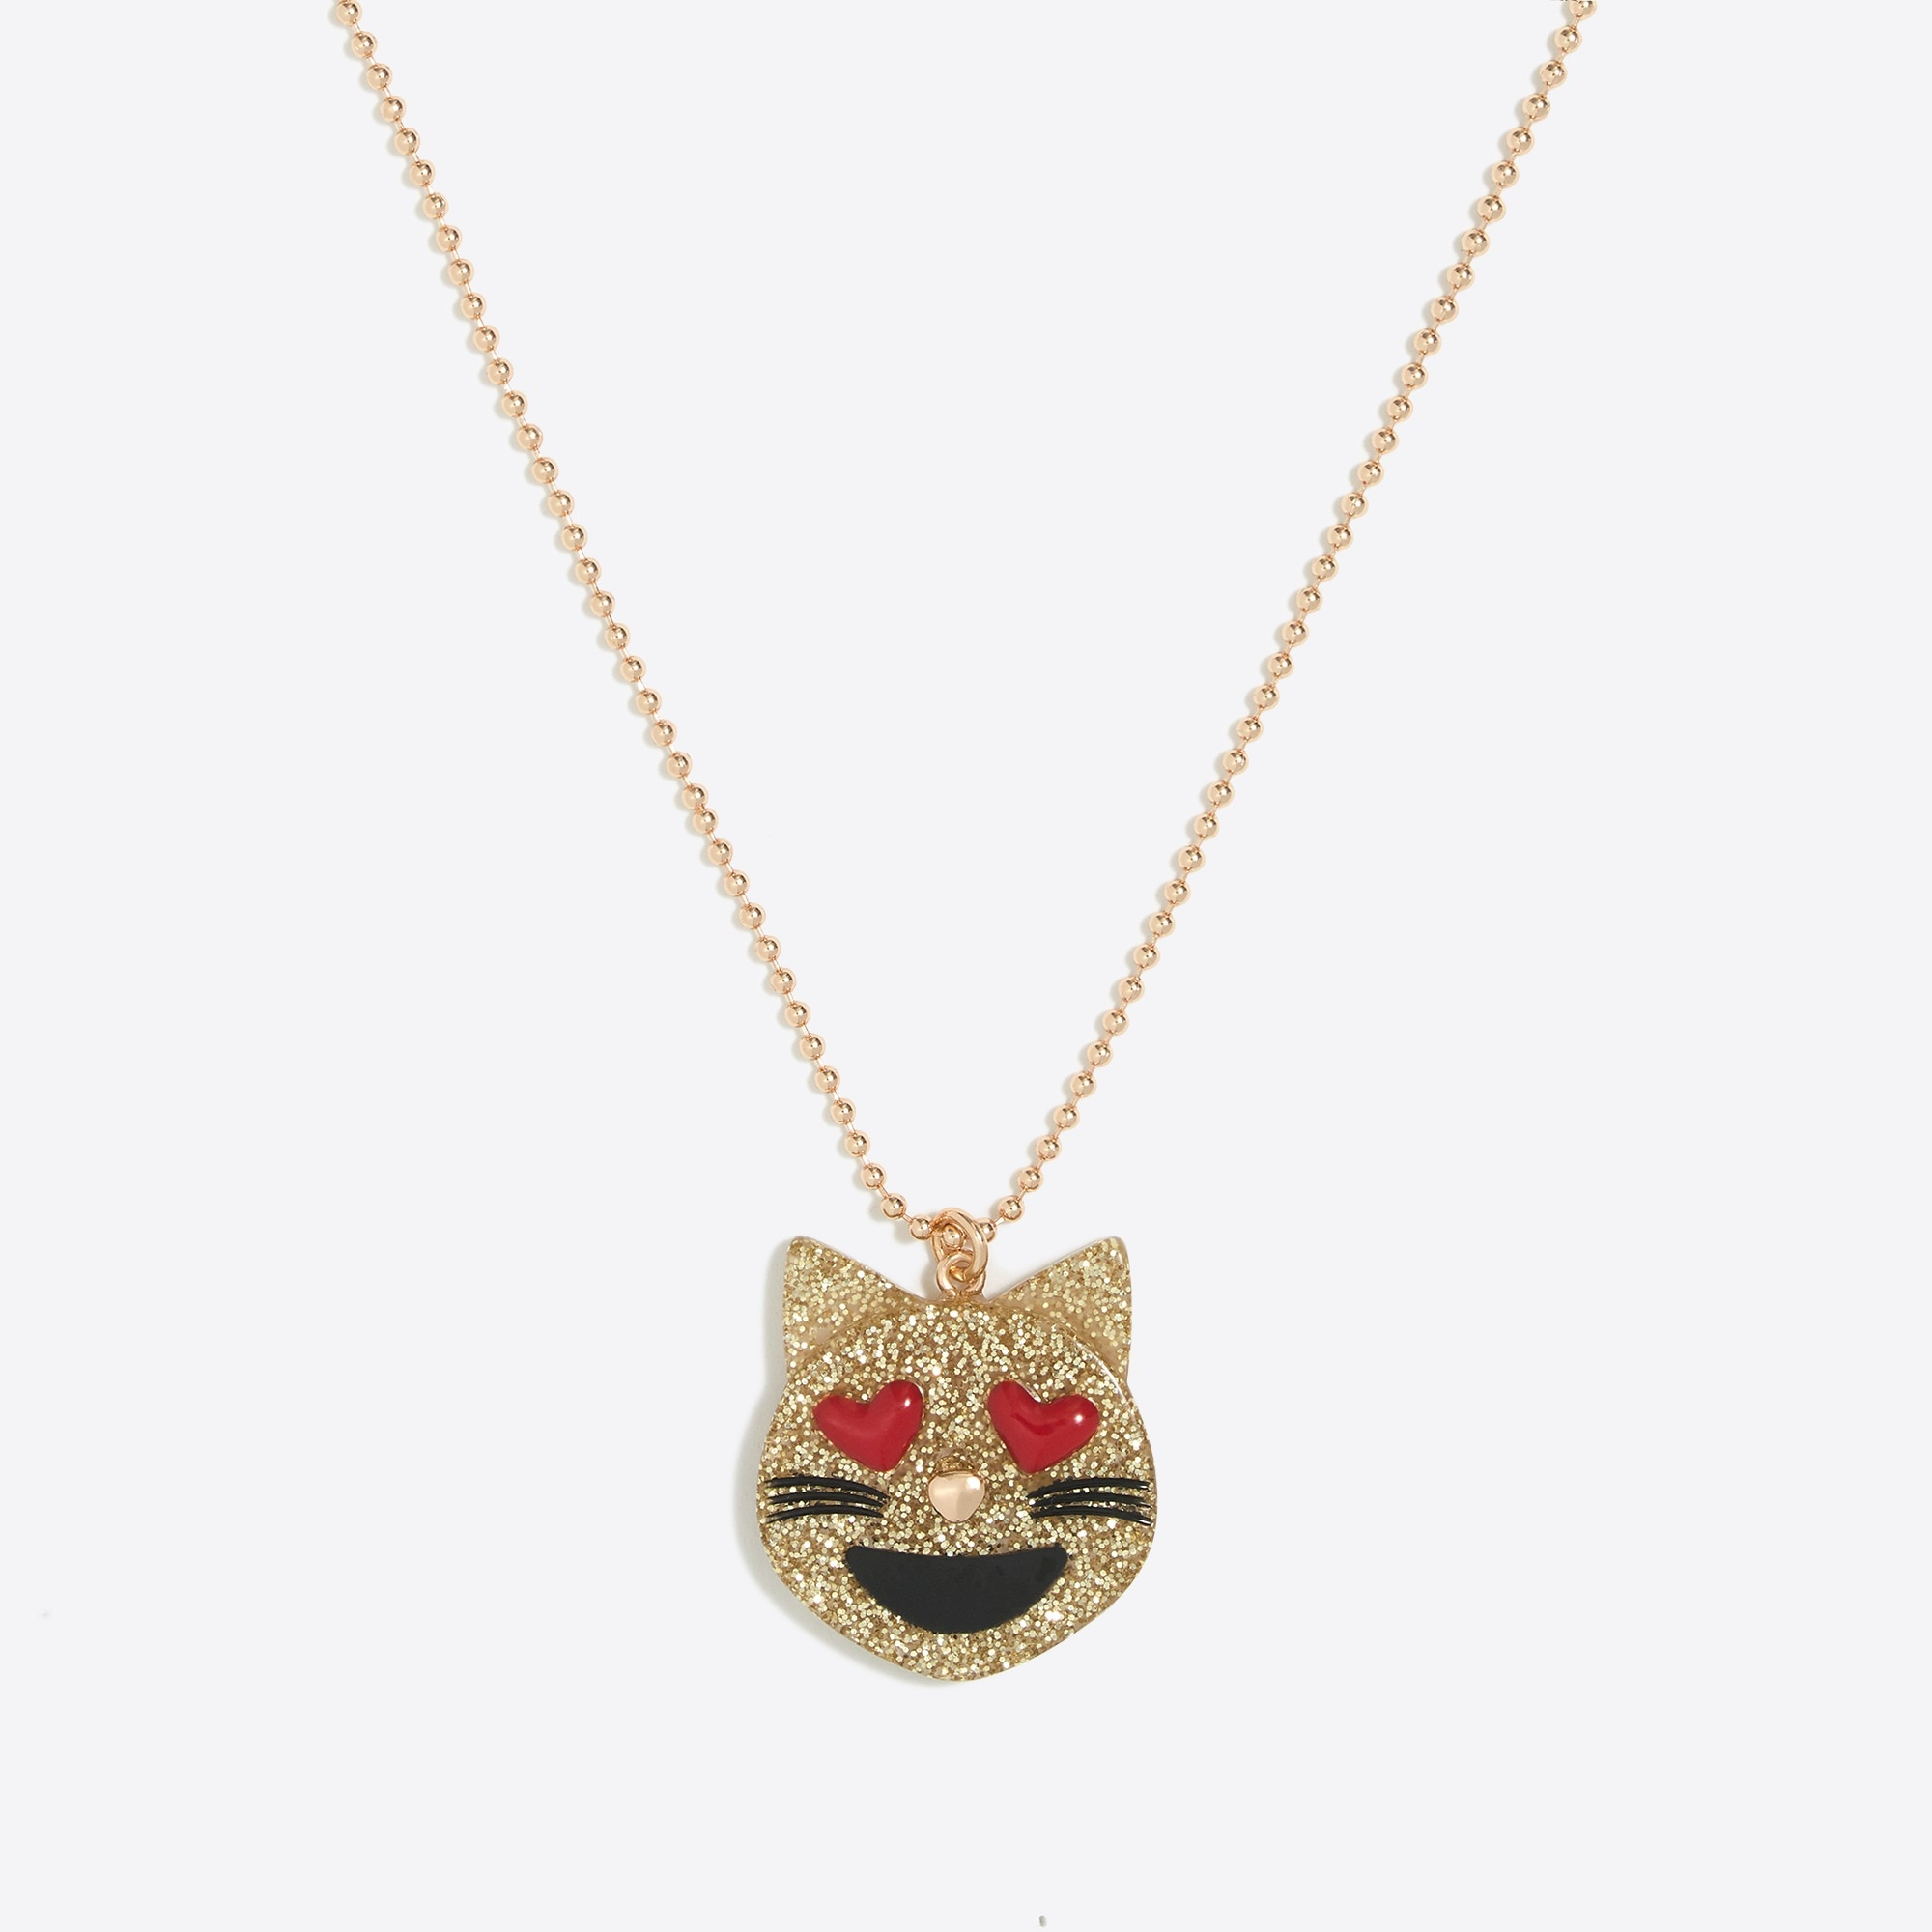 girls' emoji pendant necklace : factorygirls jewelry